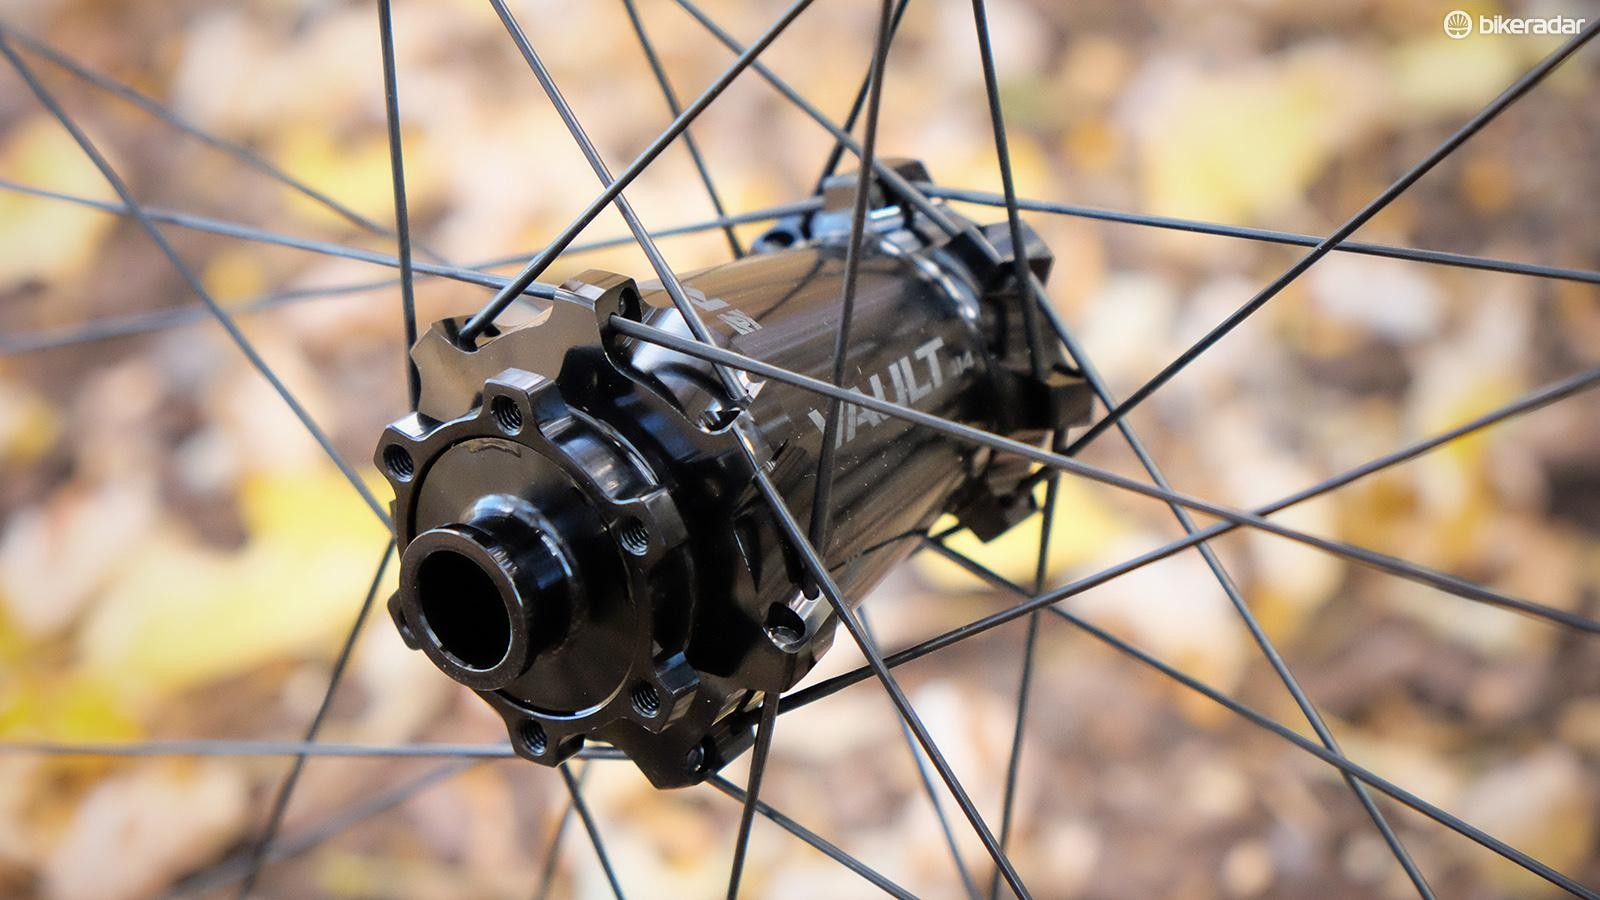 Best mountain bike wheels - BikeRadar